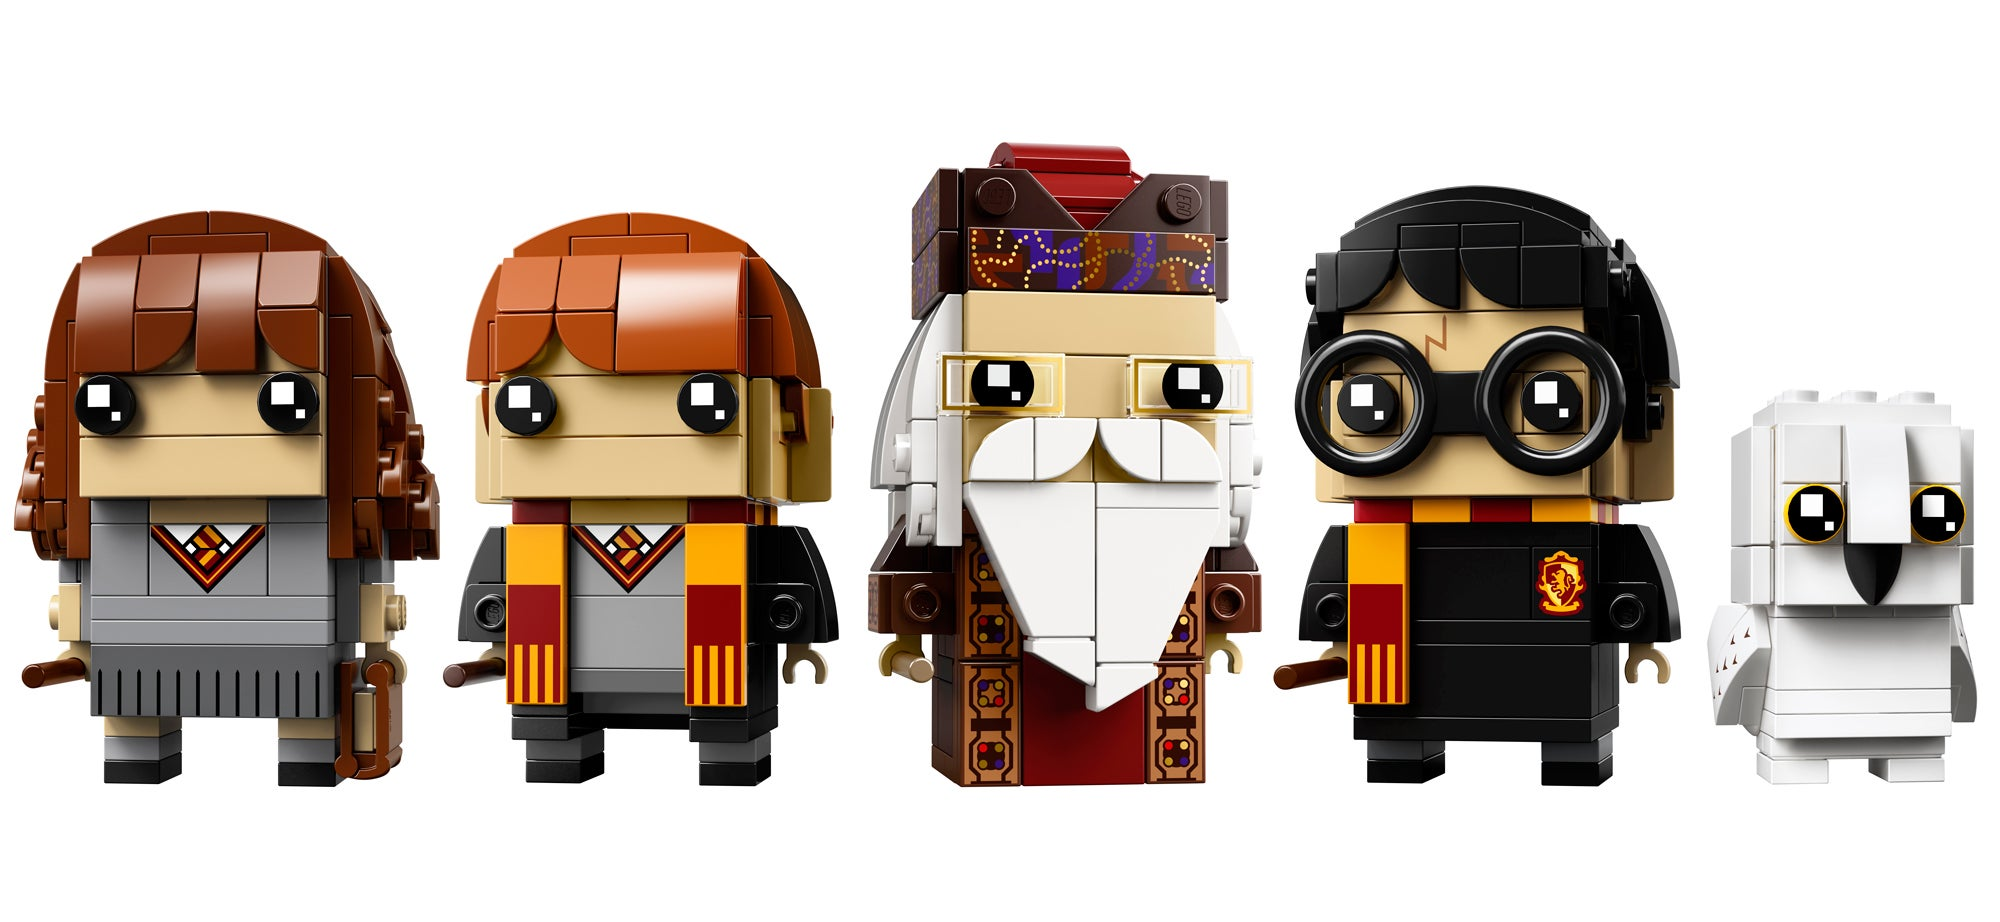 Lego's Harry Potter BrickHeadz Are Going To Avada Kedavra You With Cuteness